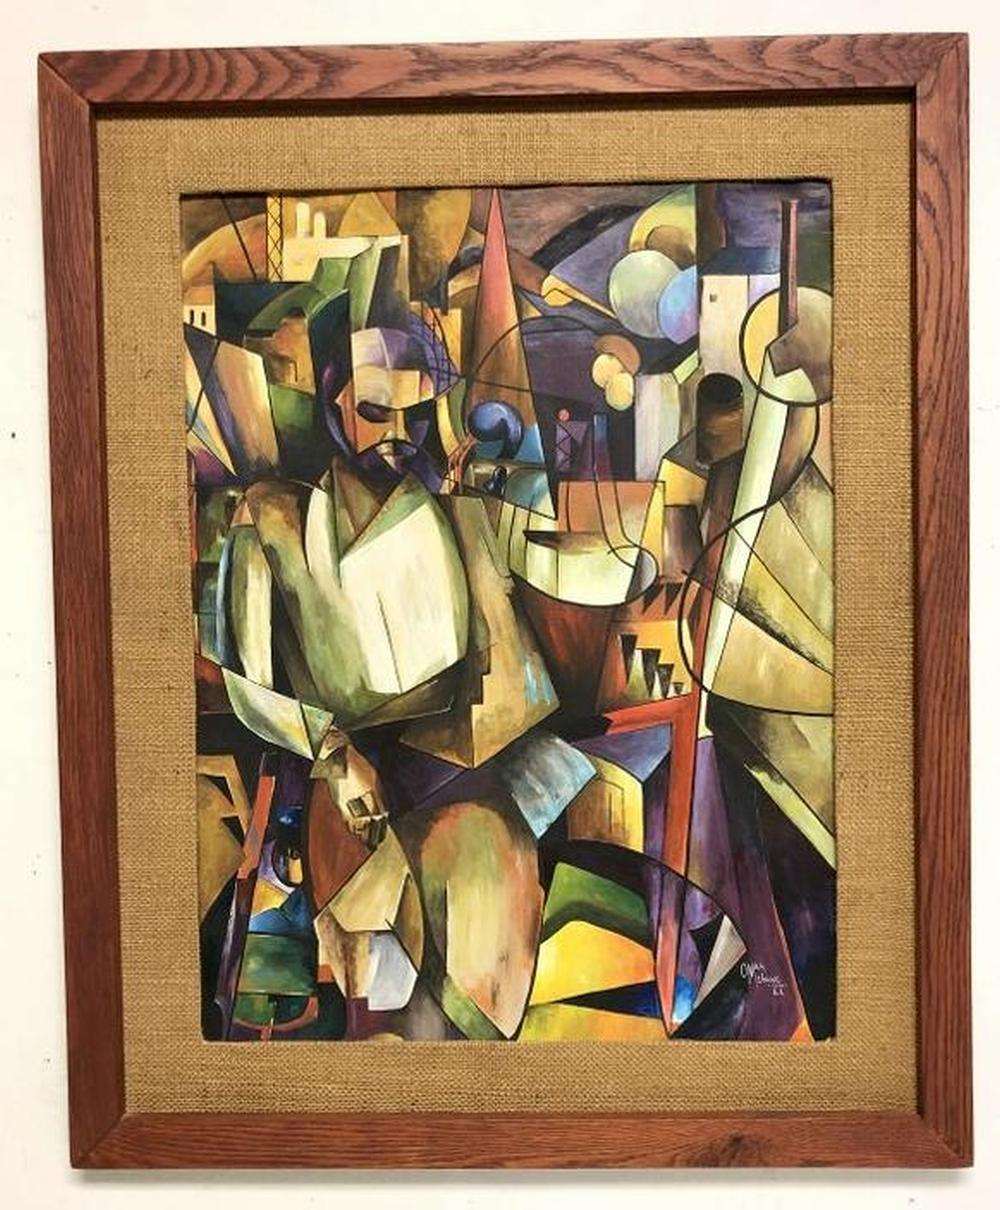 OMAR MEBANE CUBIST W/C WITH FIGURE IN FOREGROUND,